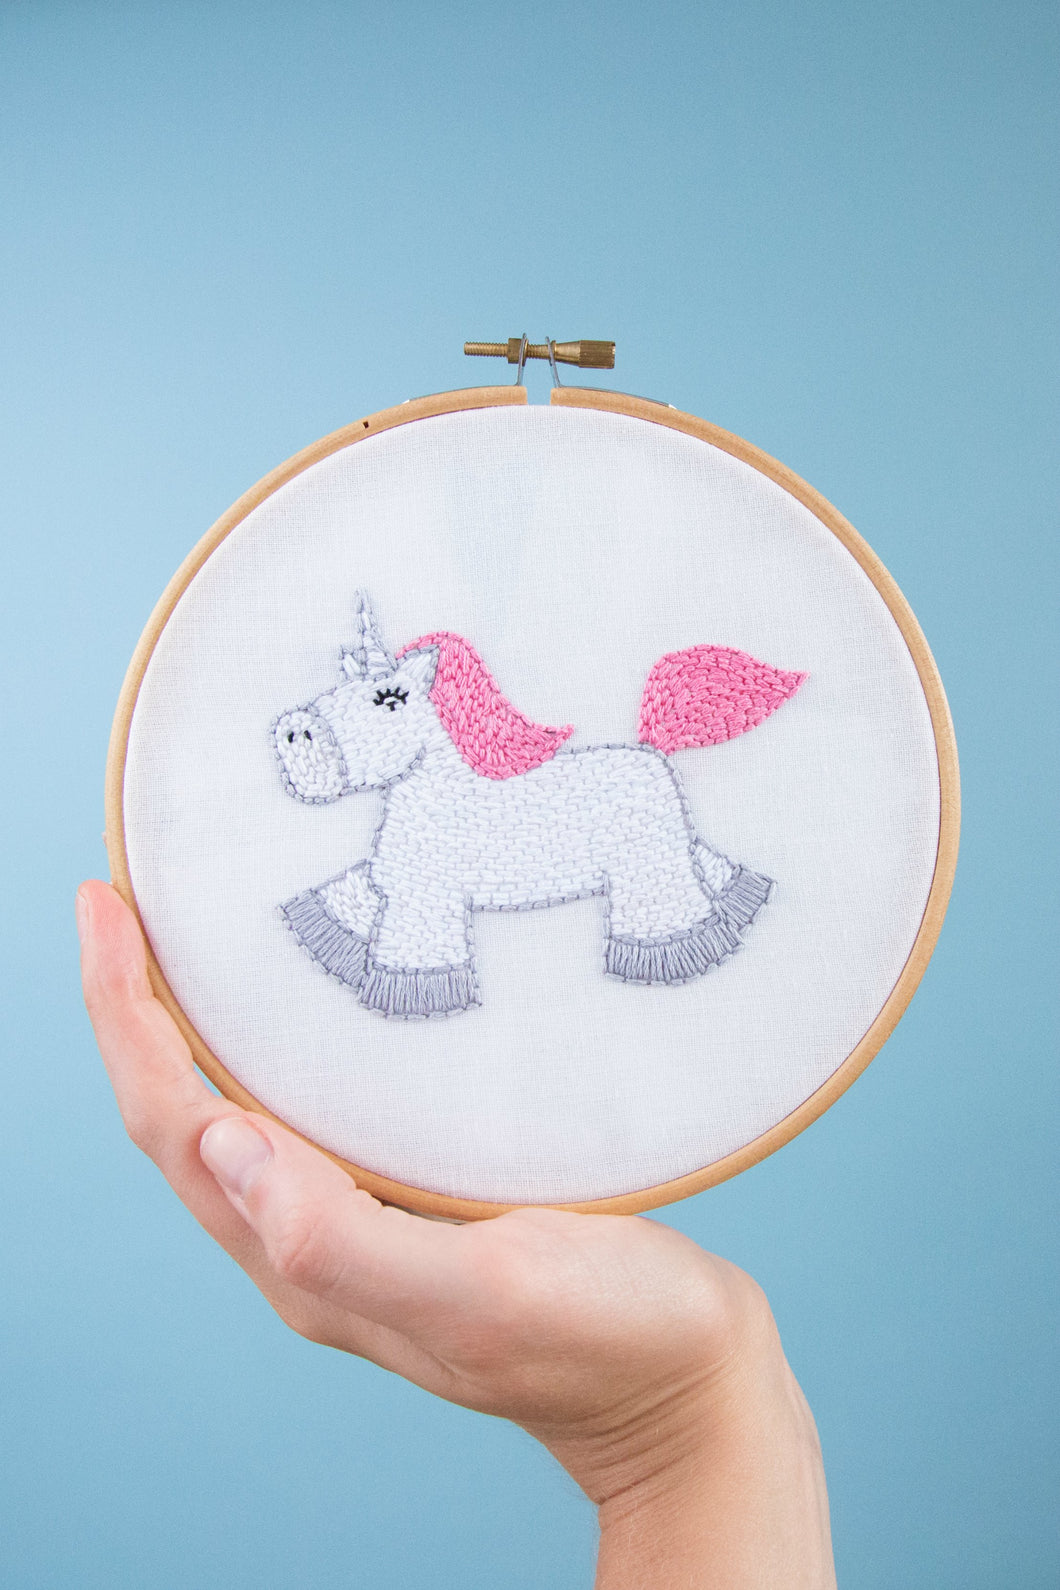 Unicorn Embroidery Hoop Kit